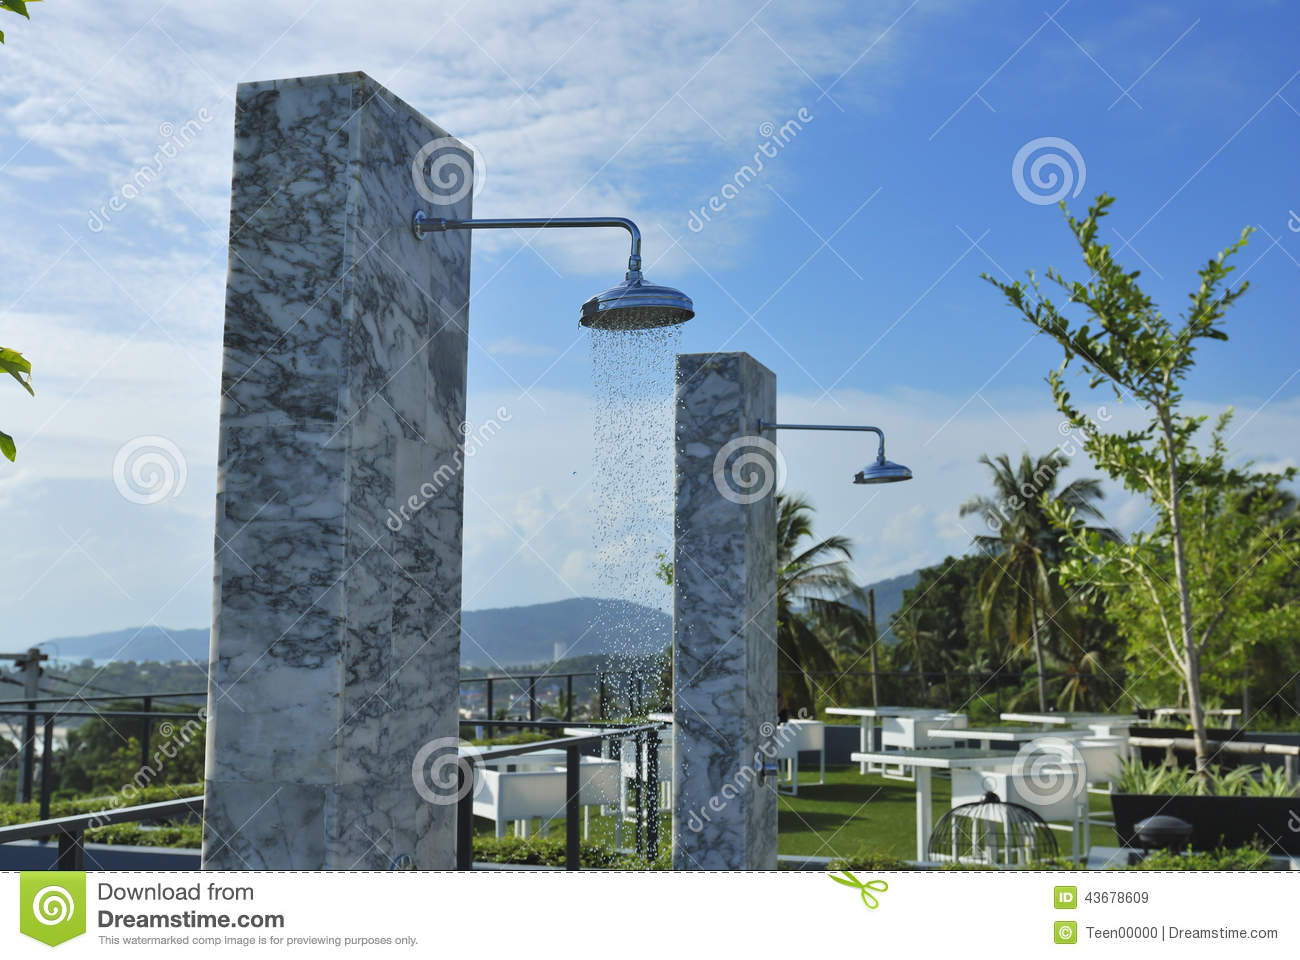 Outdoor Shower At Swimming Pool And Beach Stock Image ...